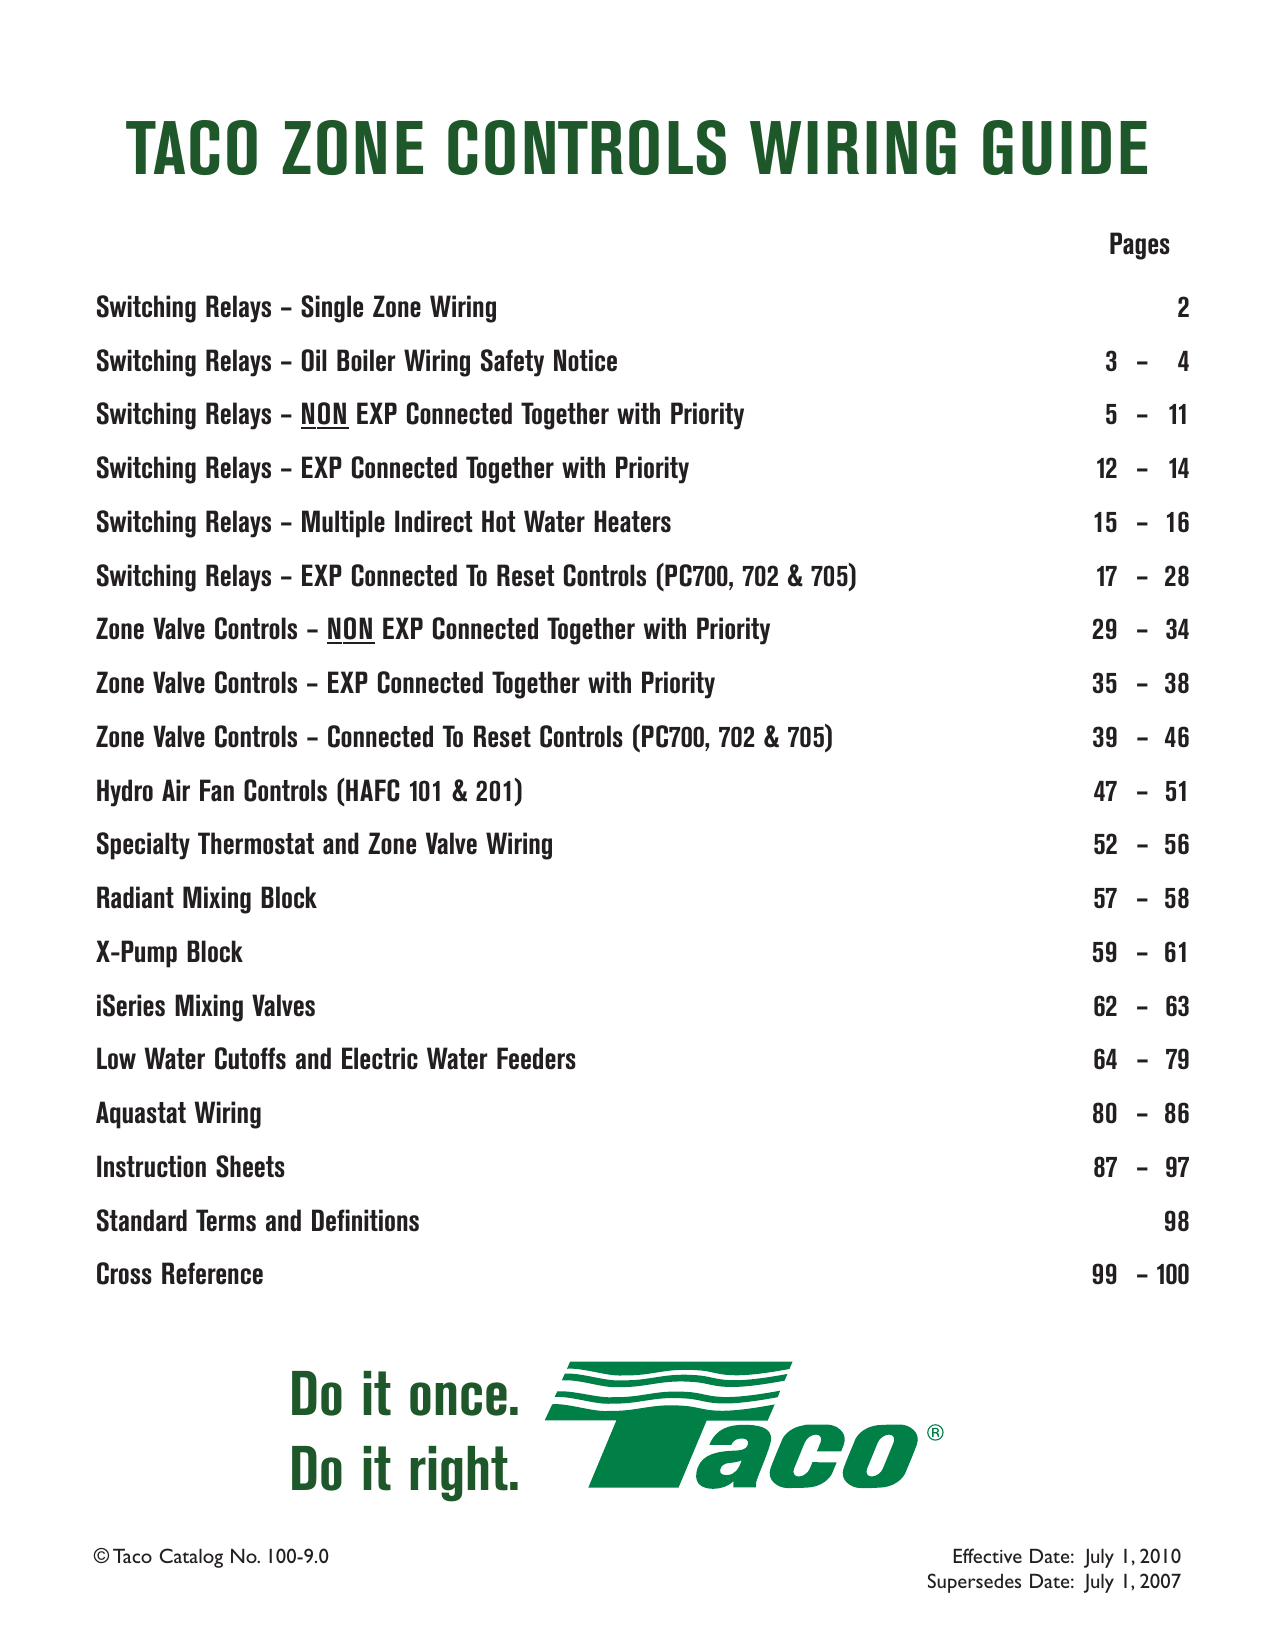 Taco Zone Controls Wiring Guide Argo Relay Diagram 014336083 1 Ae982e149e0d28c155ad5a8a45cb24ca